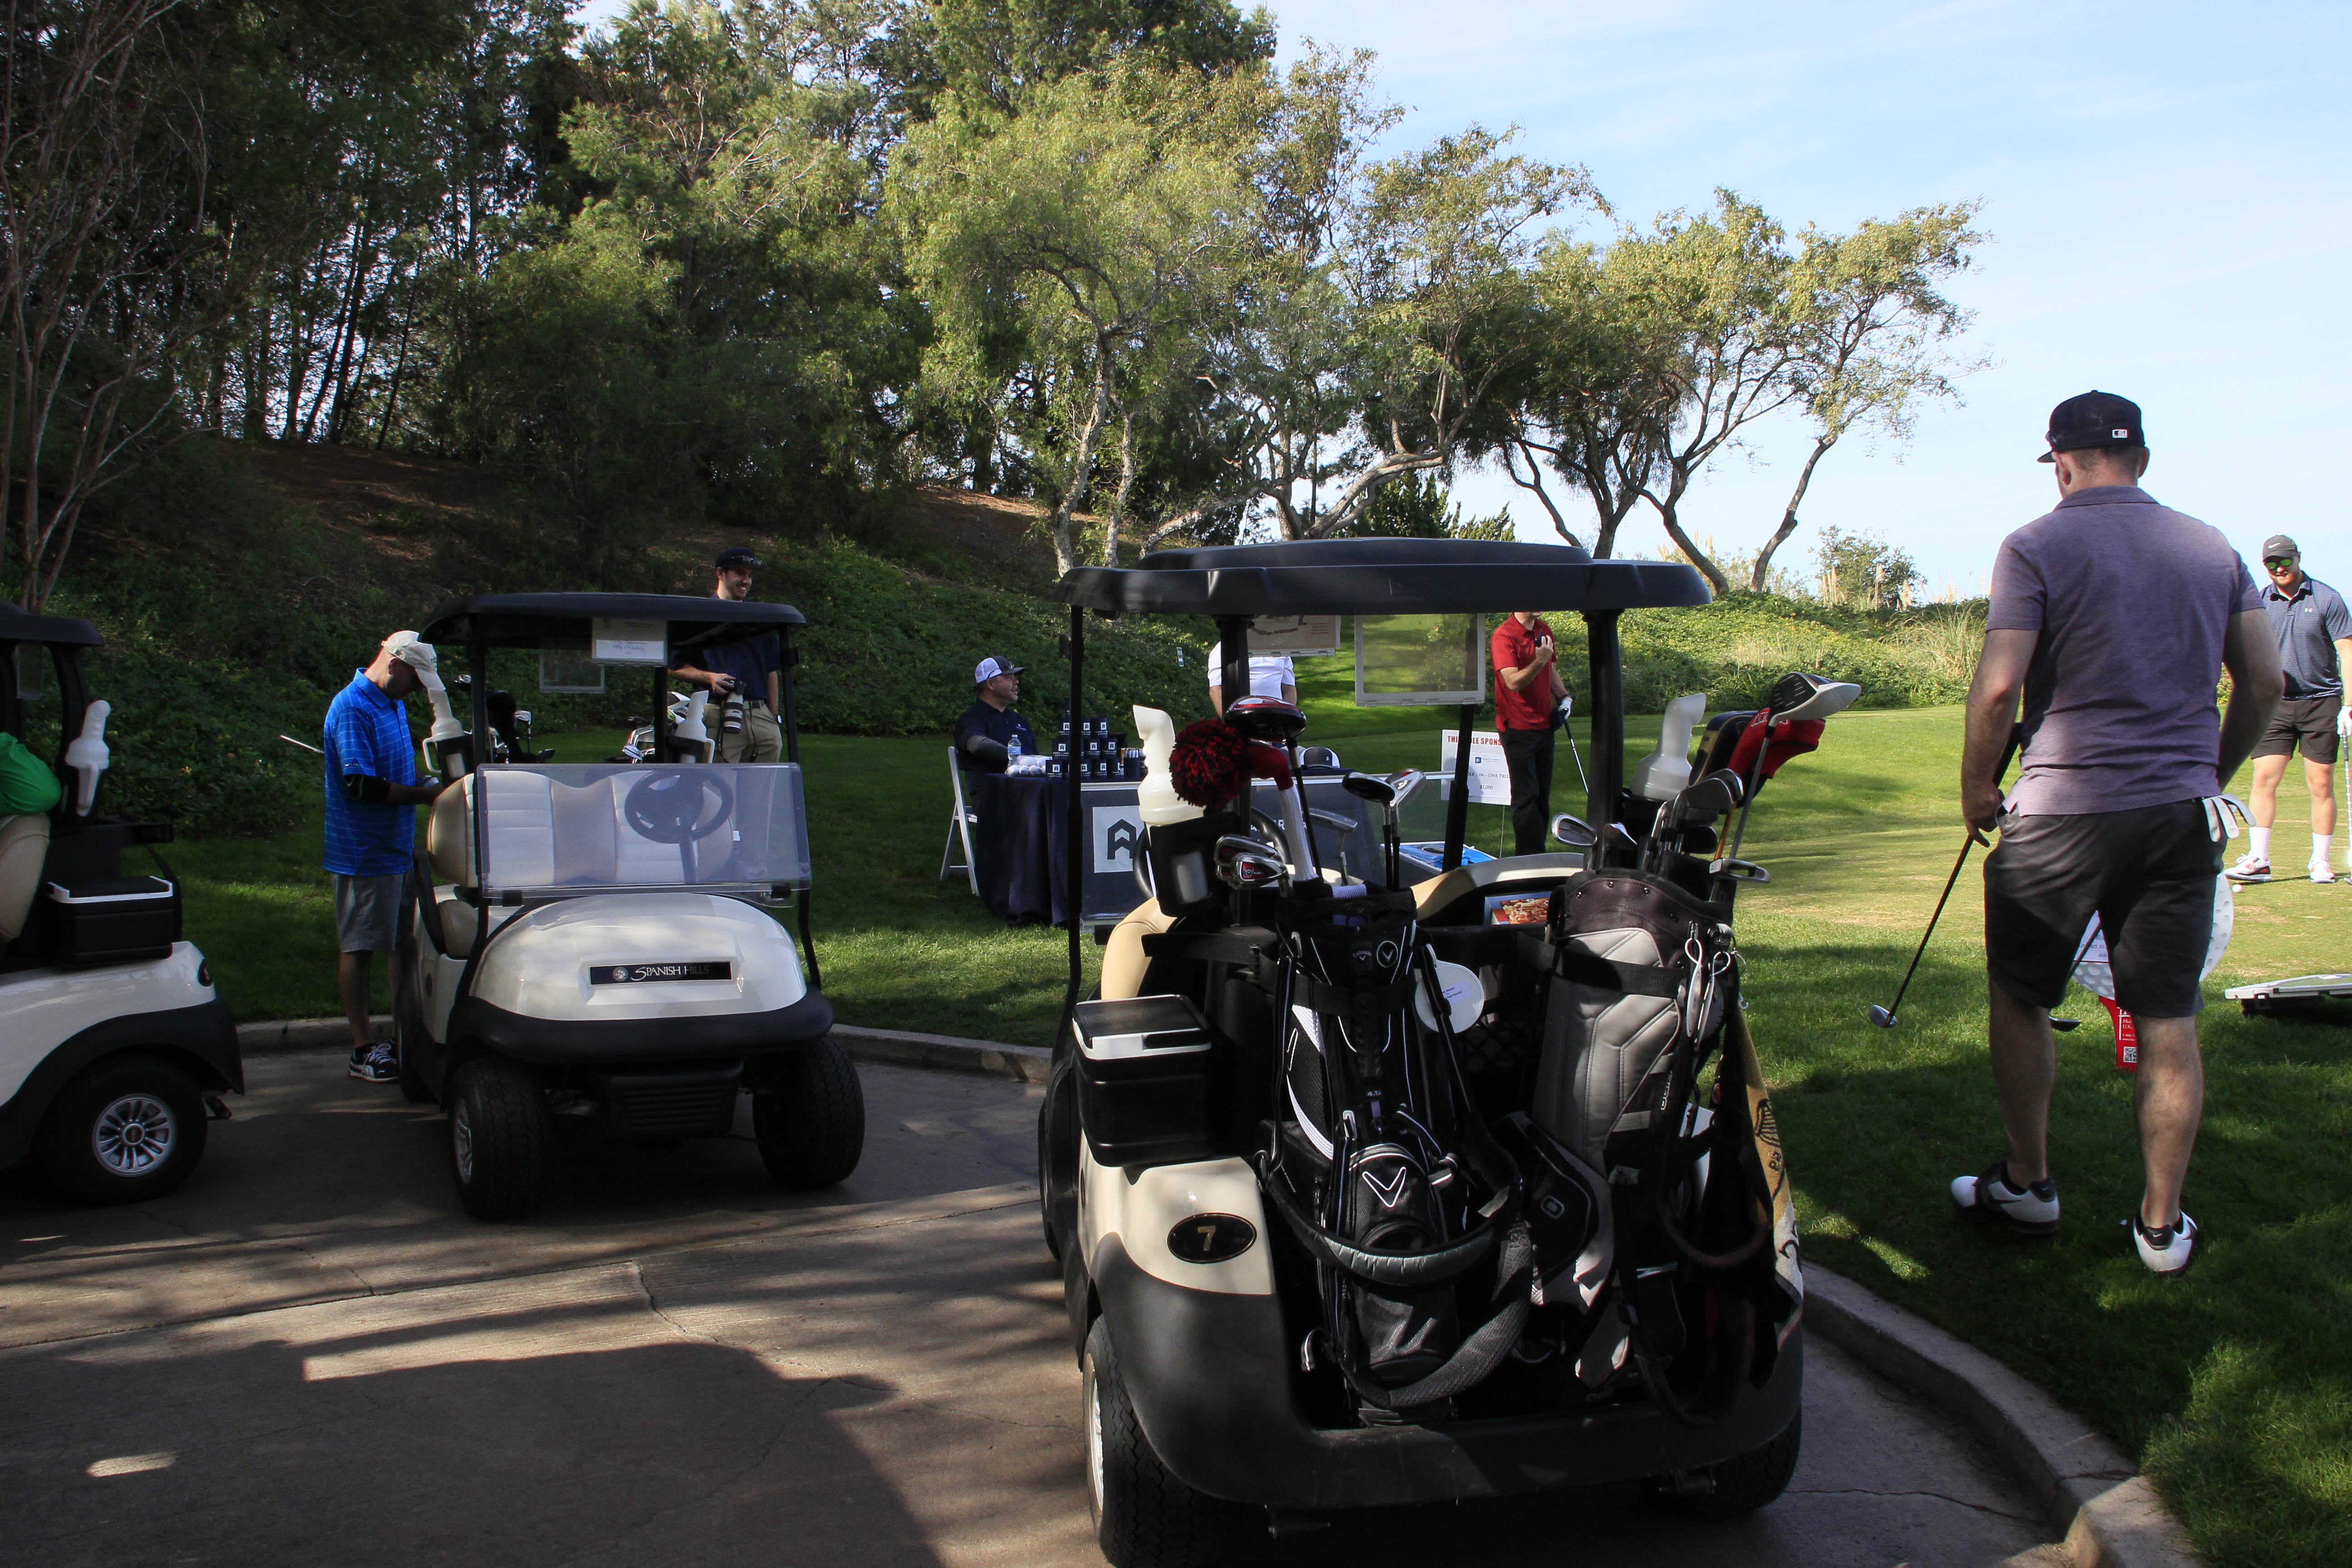 12th Annual Charity Golf Tournament in Support of Veterans